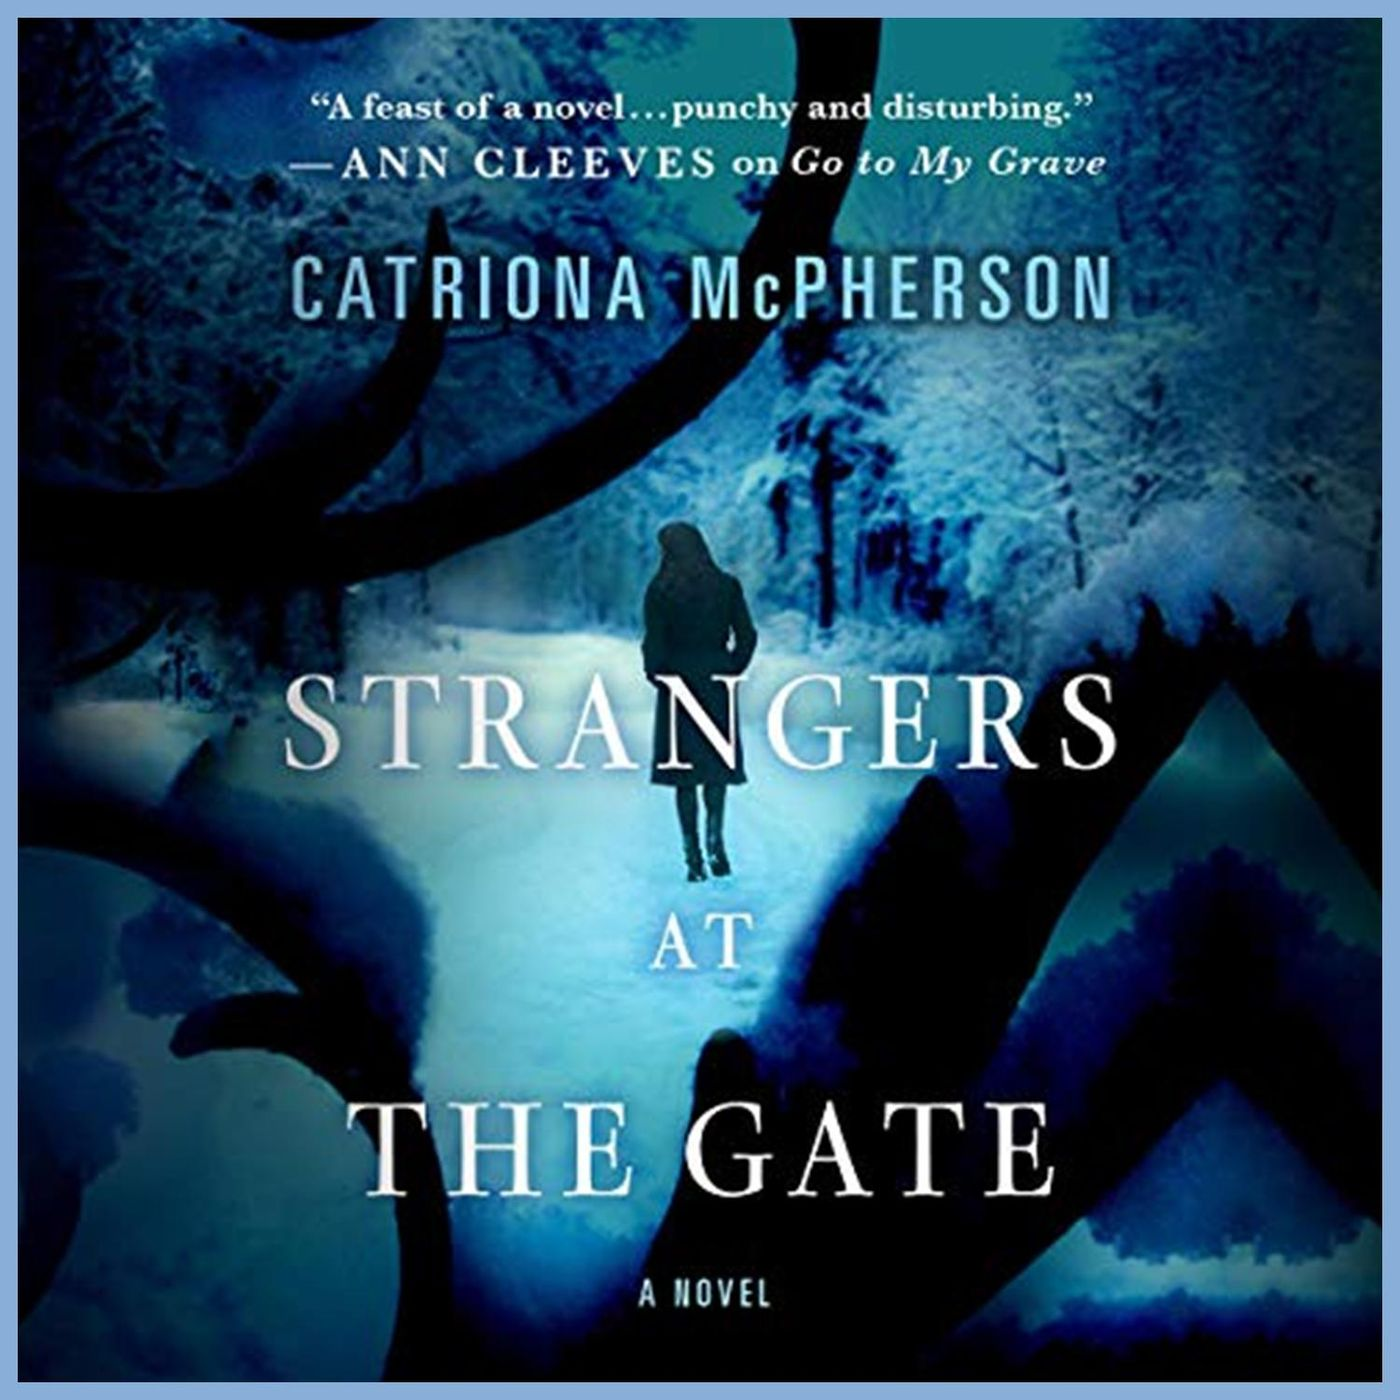 CATRIONA McPHERSON - Strangers At The Gate